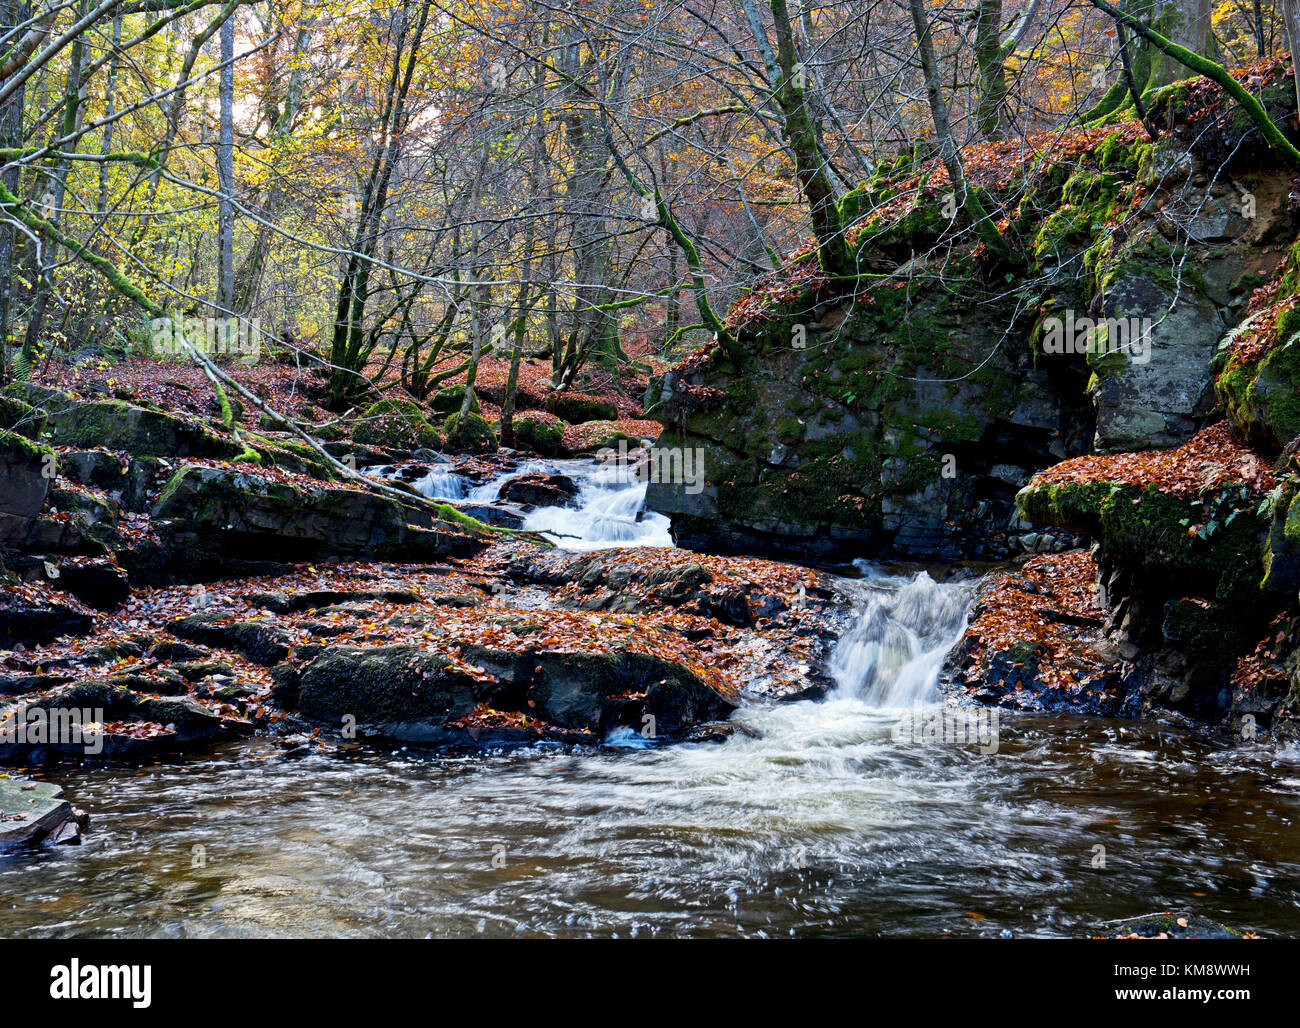 The Birks of Aberfeldy at the peak of the autumn colours - Stock Image